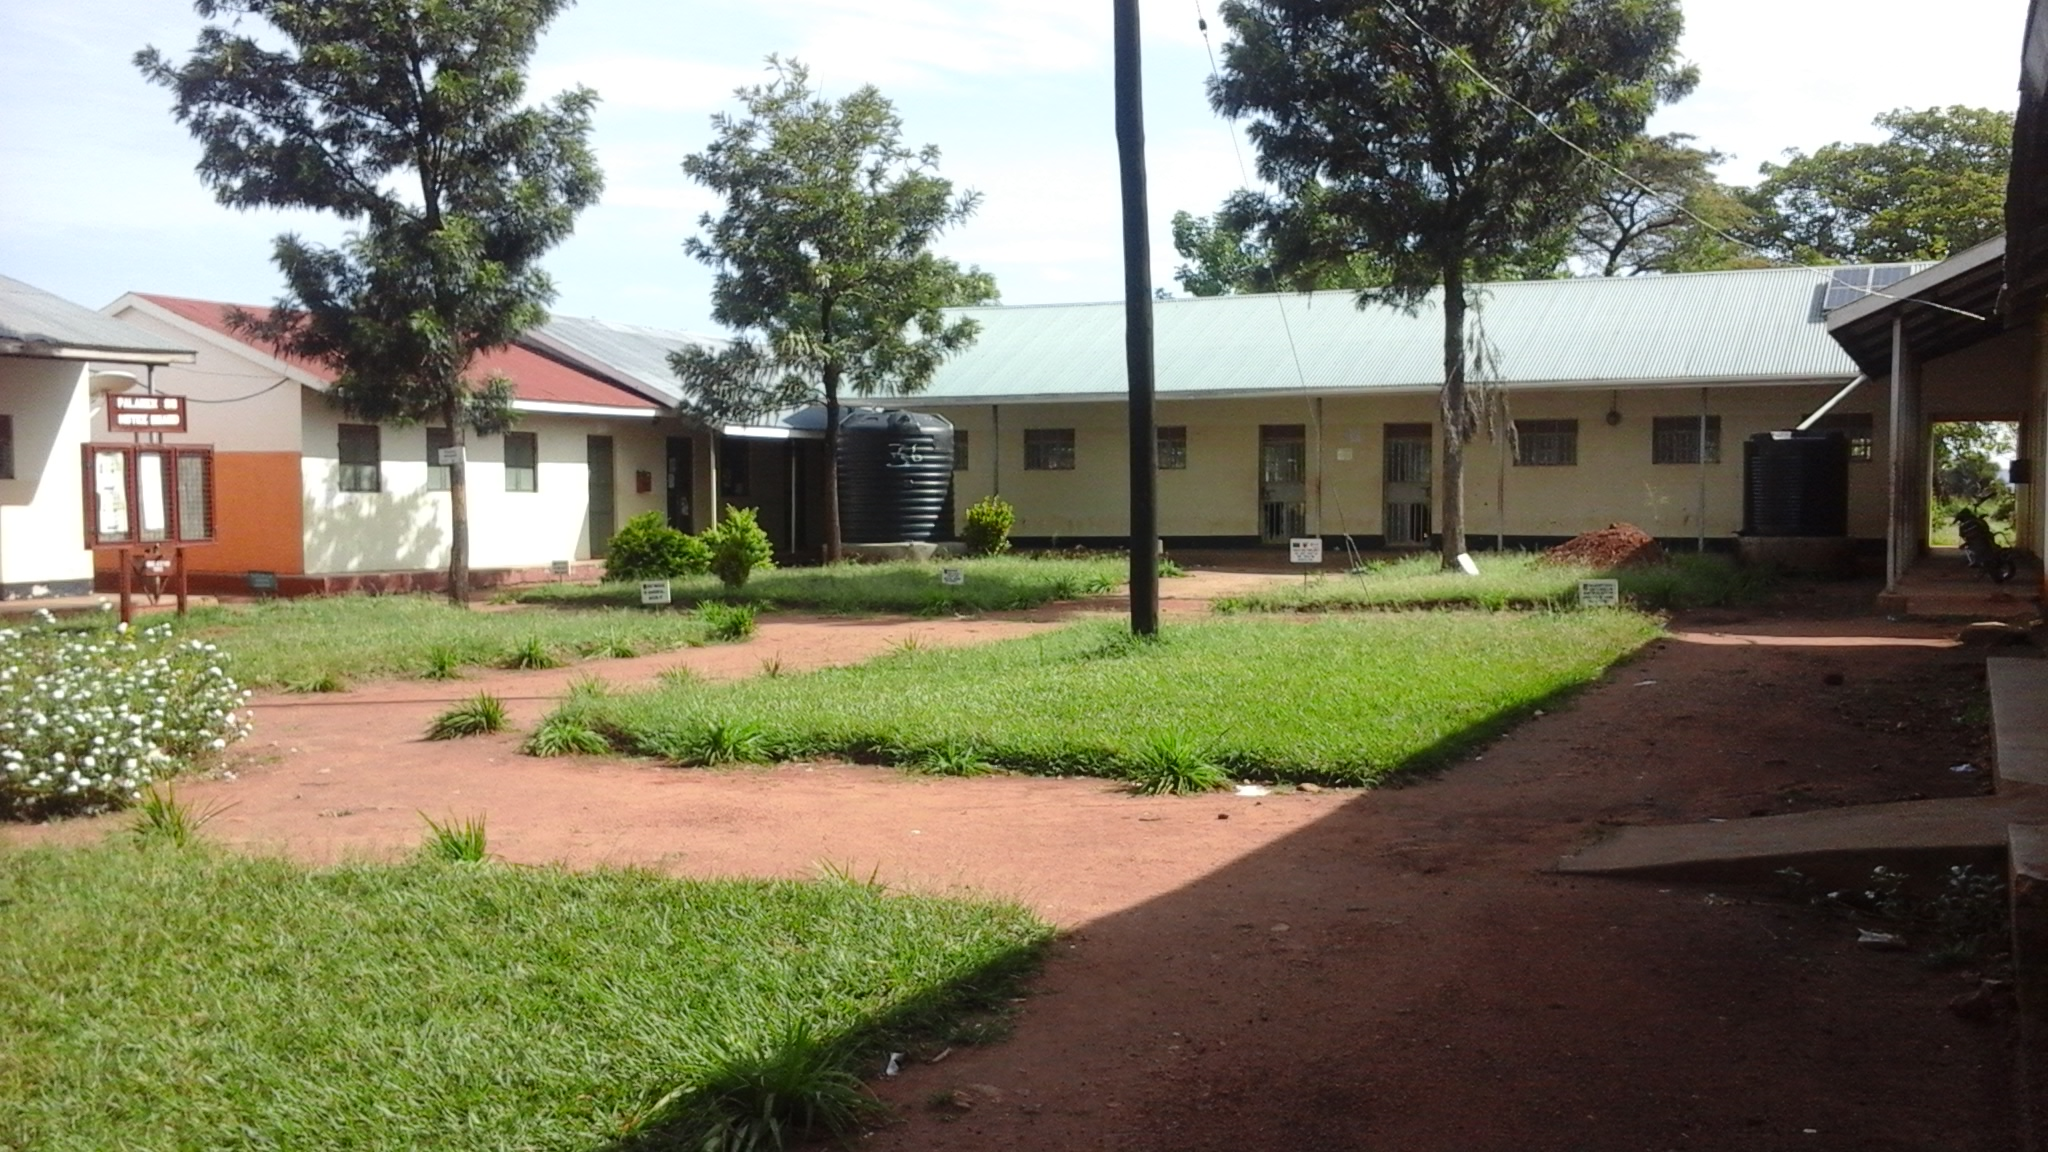 Courtyard photo of Palabek School